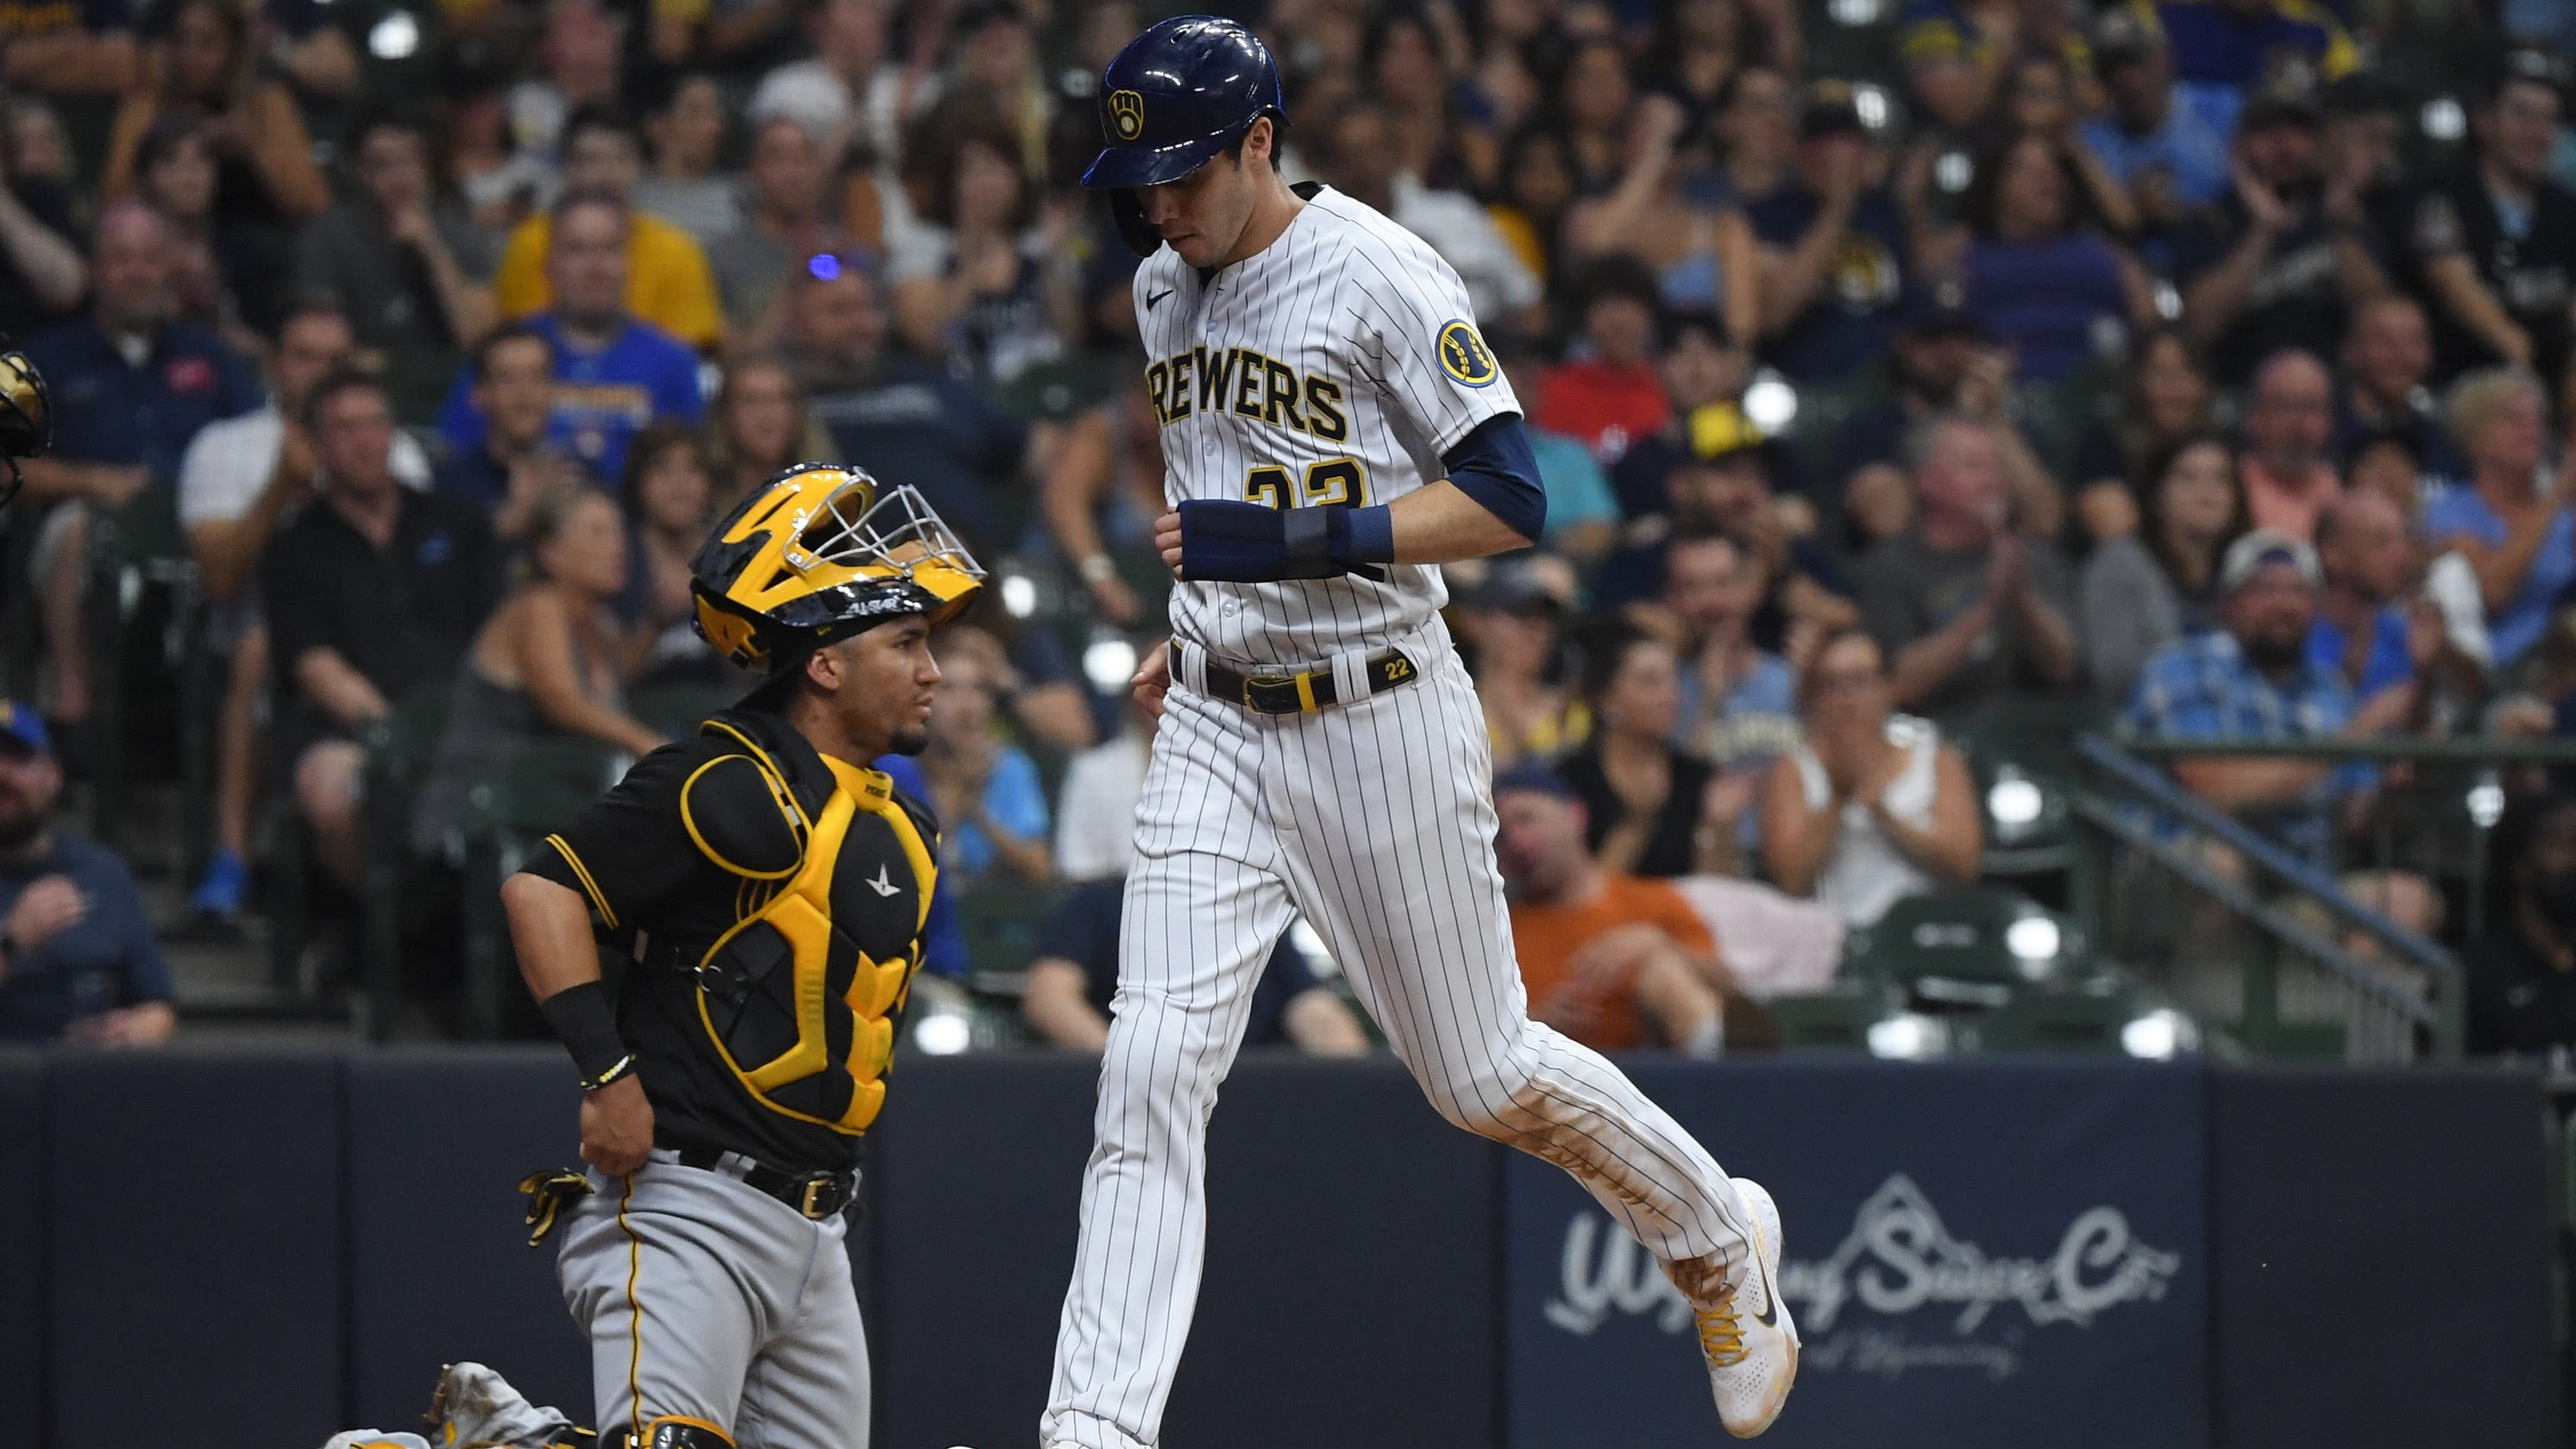 Brewers 7, Pirates 4: Milwaukee ties franchise record by drawing six free passes in seventh